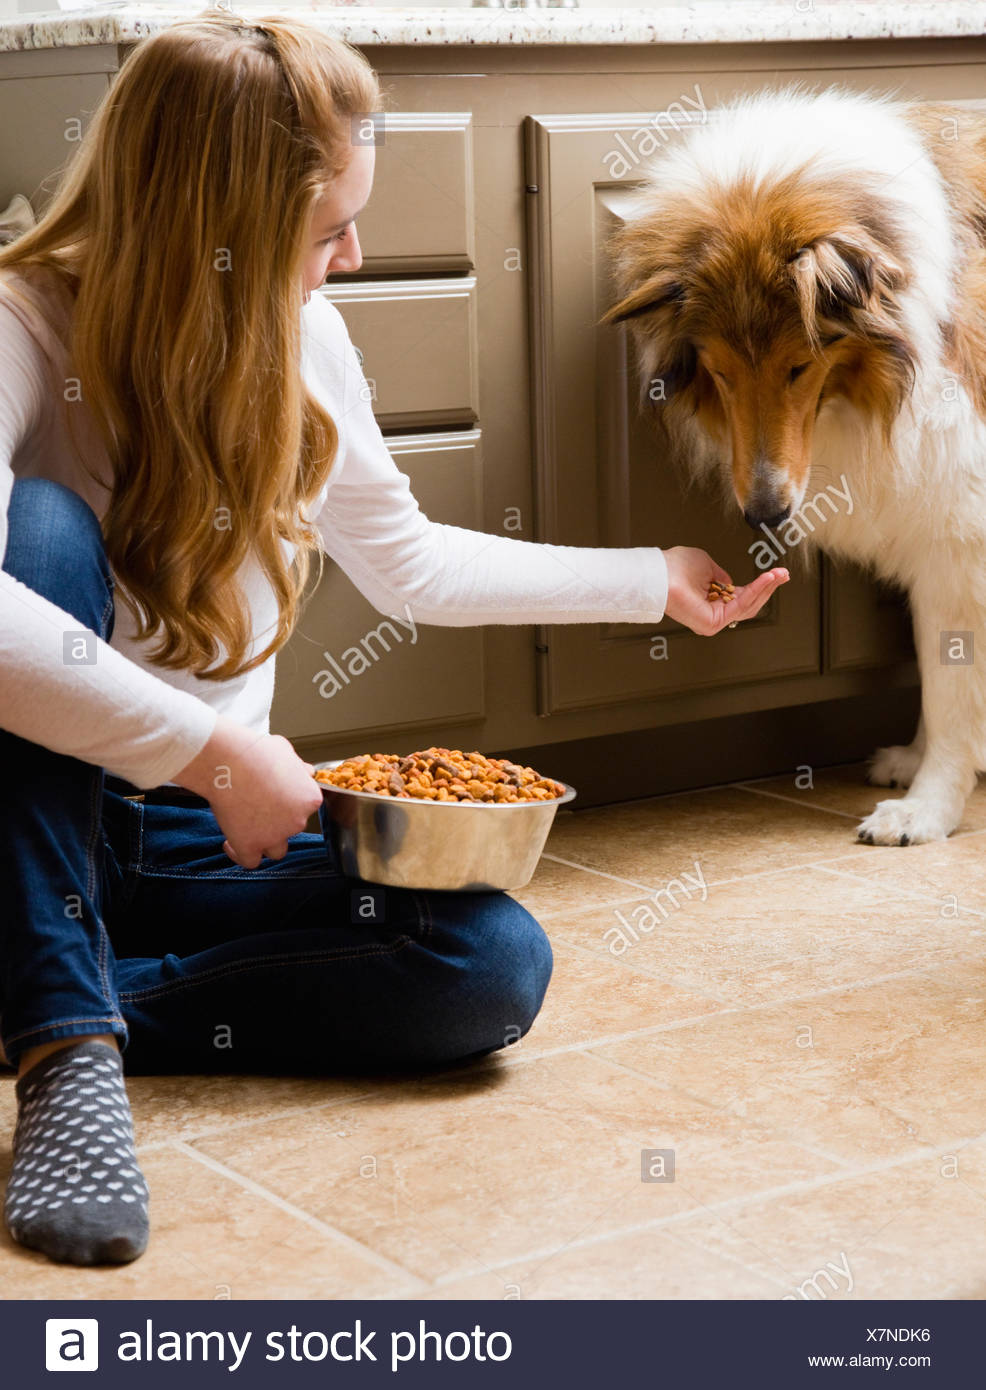 Teenage girl (14-15) feeding collie dog in kitchen - Stock Image